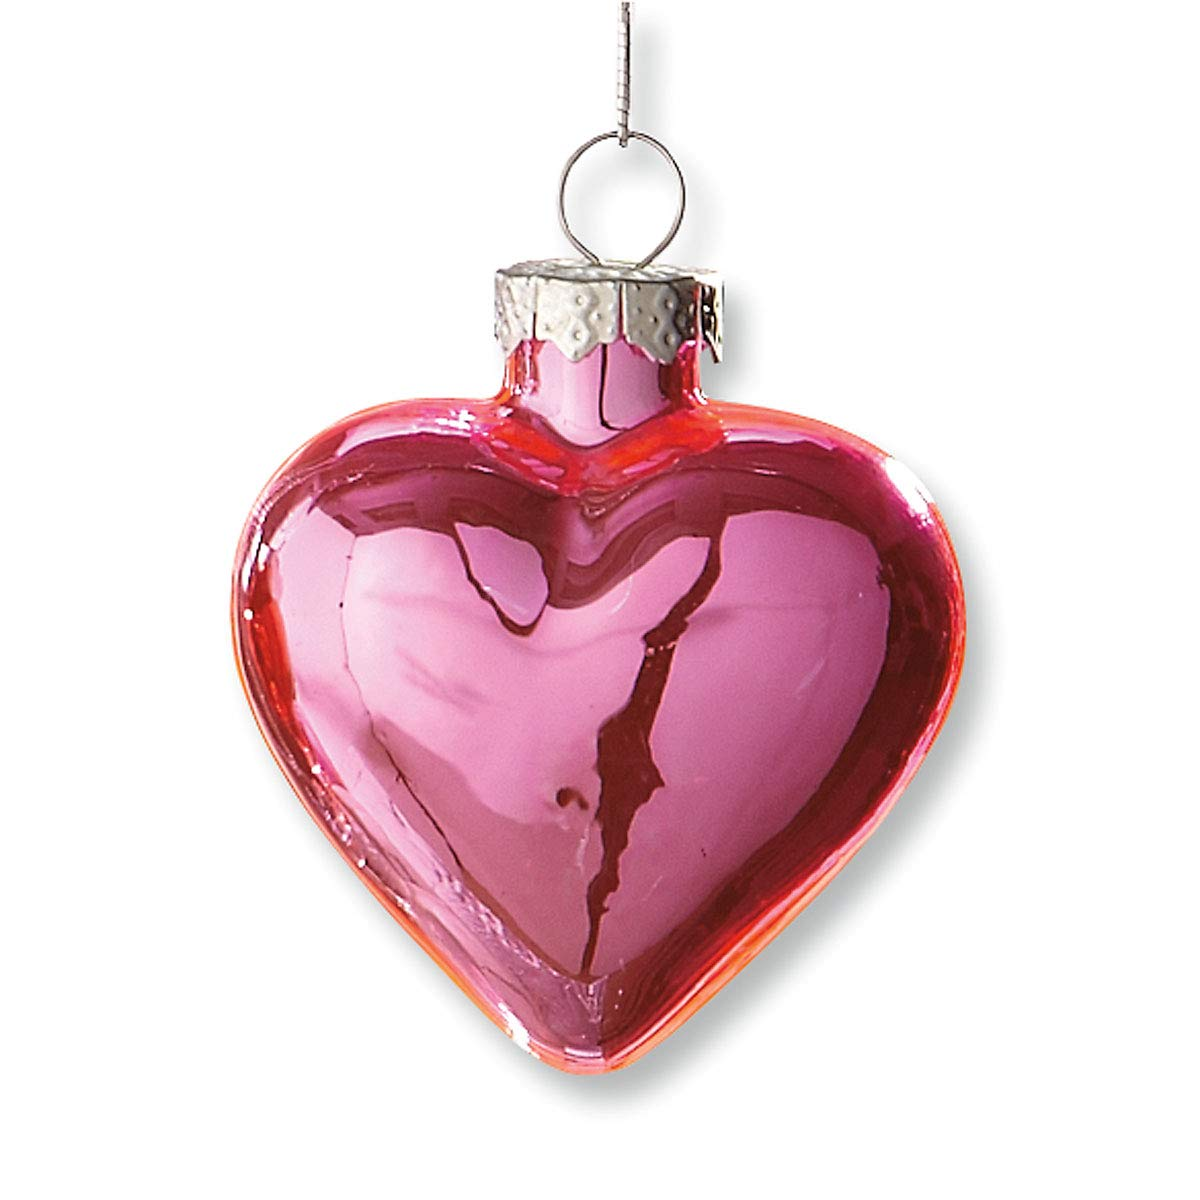 Hand Blown Glass Lillian Vernon Shiny Glass Hearts Valentines Day Ornaments 4 of Each Color 1-1//4 x 2 x 2 Holiday Decorations Set of 12 Festive Home Decor